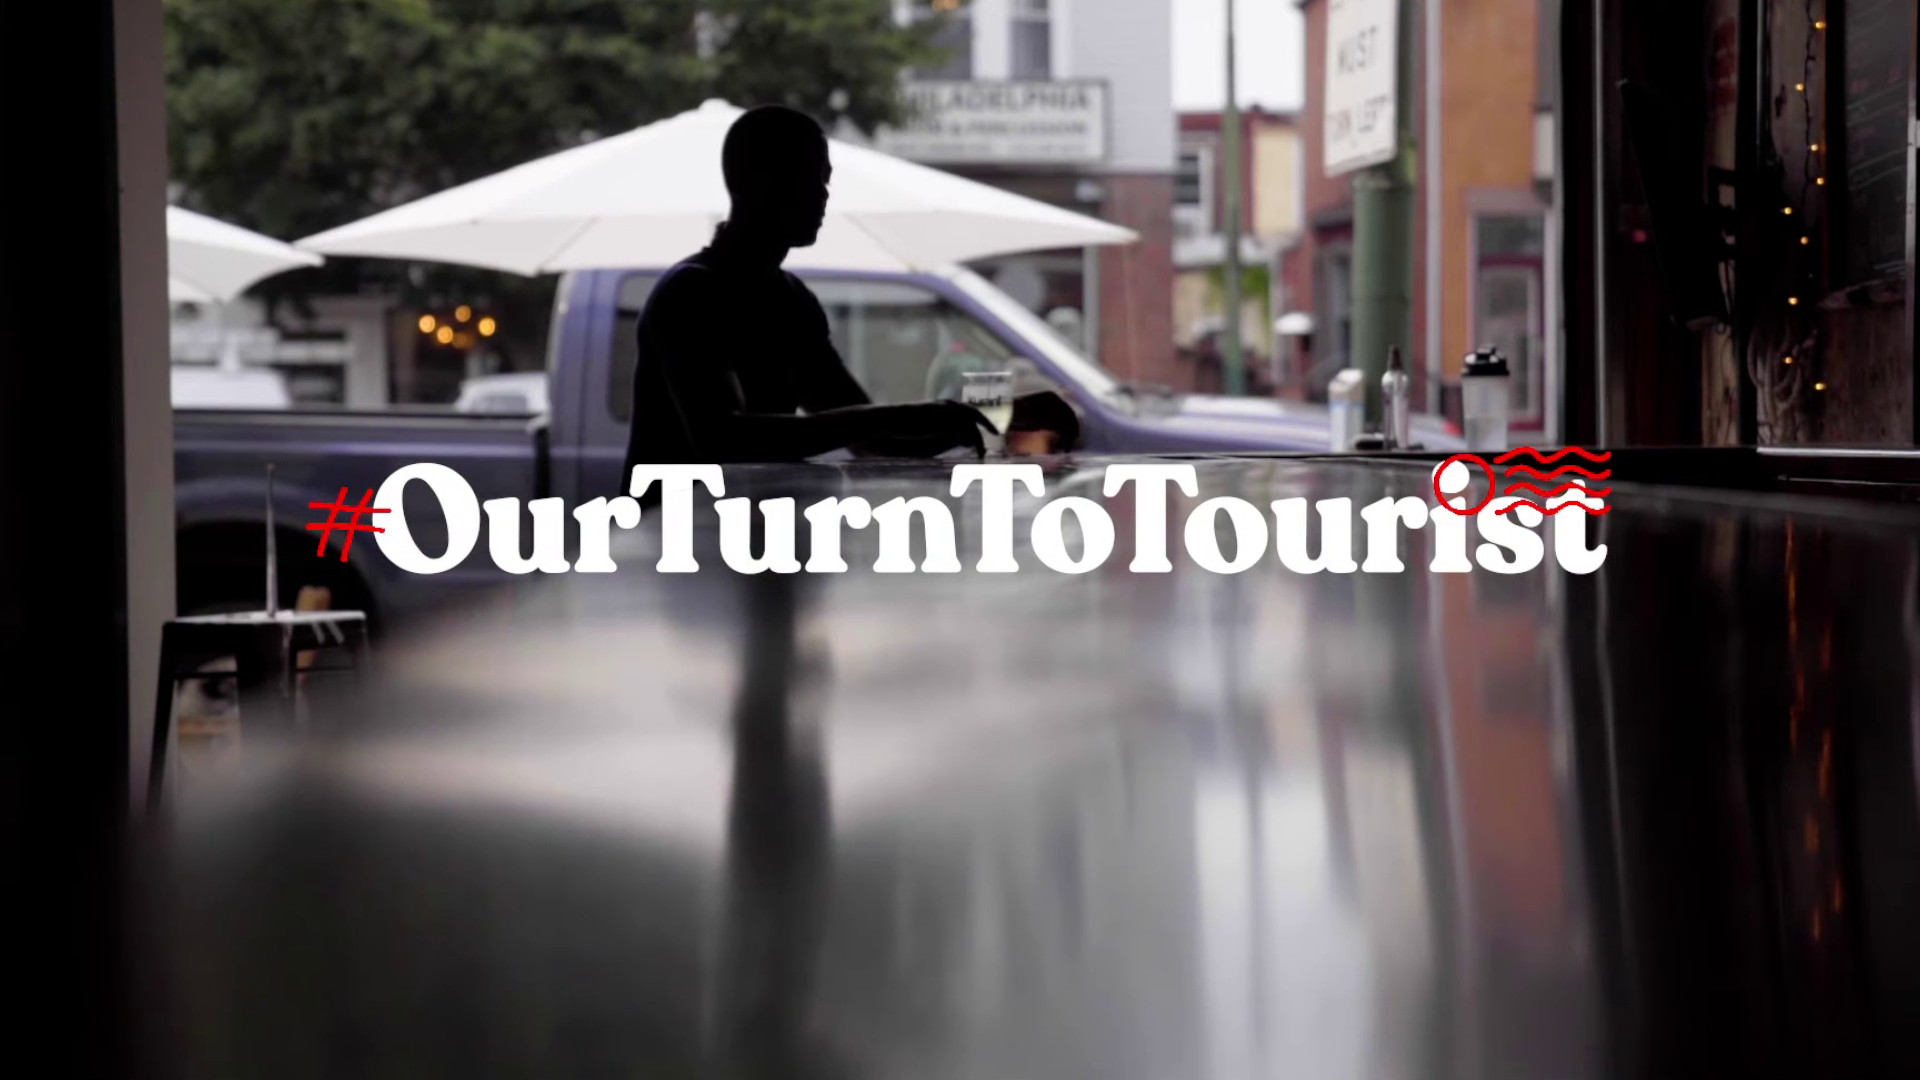 Our Turn to Tourist Campaign by Visit Philadelphia